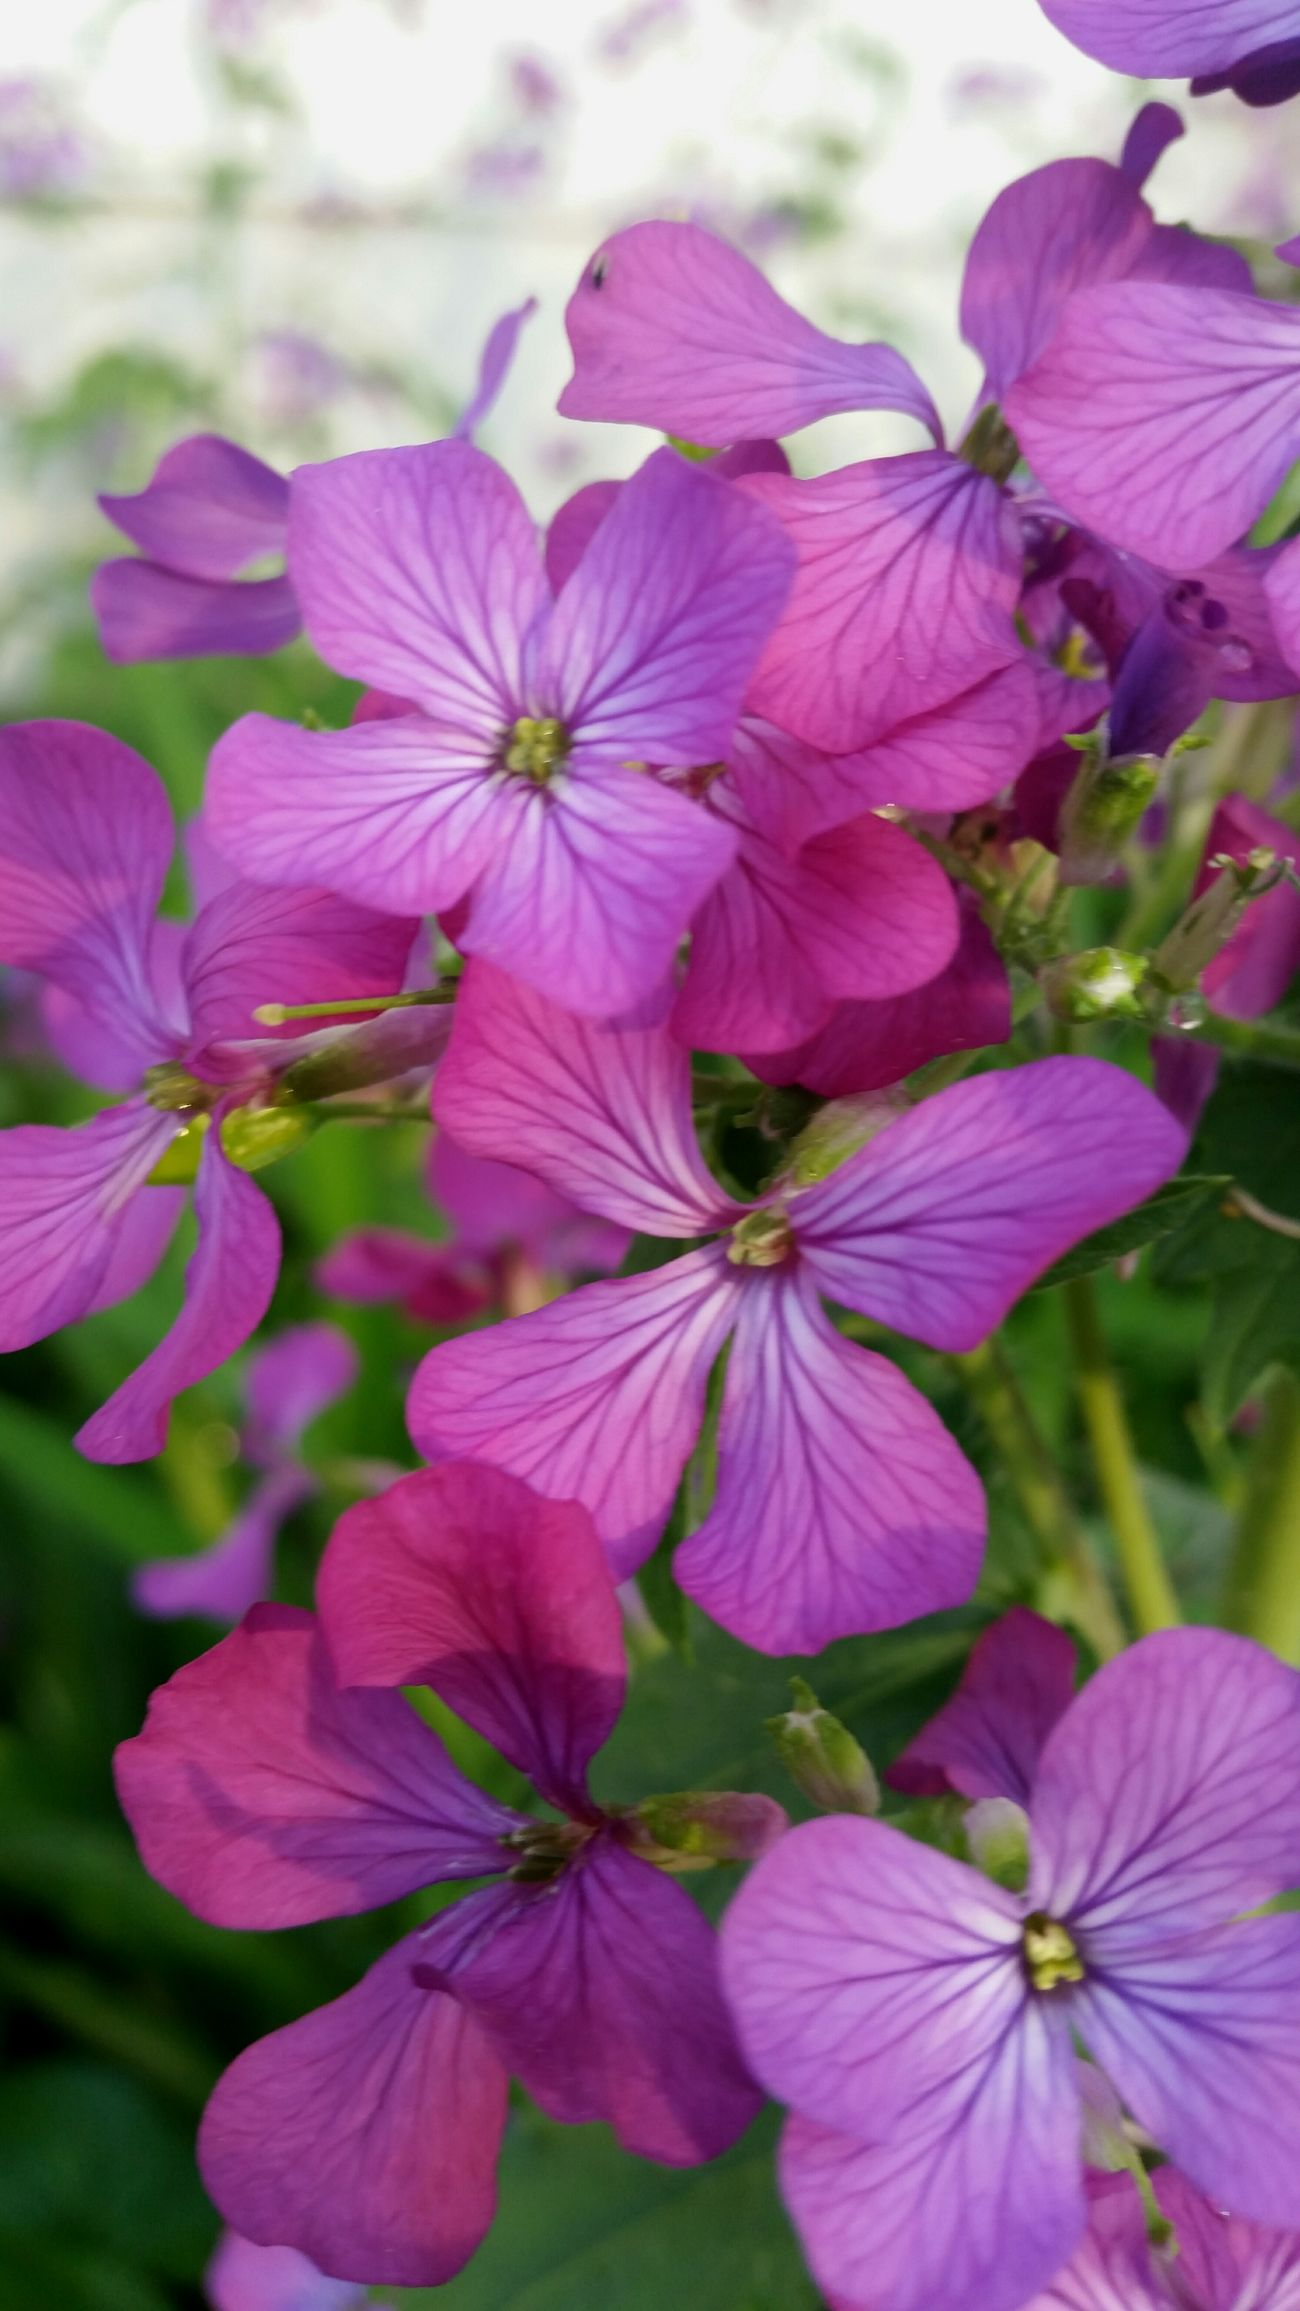 Flower Pink Color Beauty In Nature Nature Petal Fragility No People Purple FreshnessPlant Nature Growth Flower Head Springtime Plant Outdoors DayFreshness Beauty In Nature Close-up Growth Happy Makesmesmile Good Life Enjoying Life